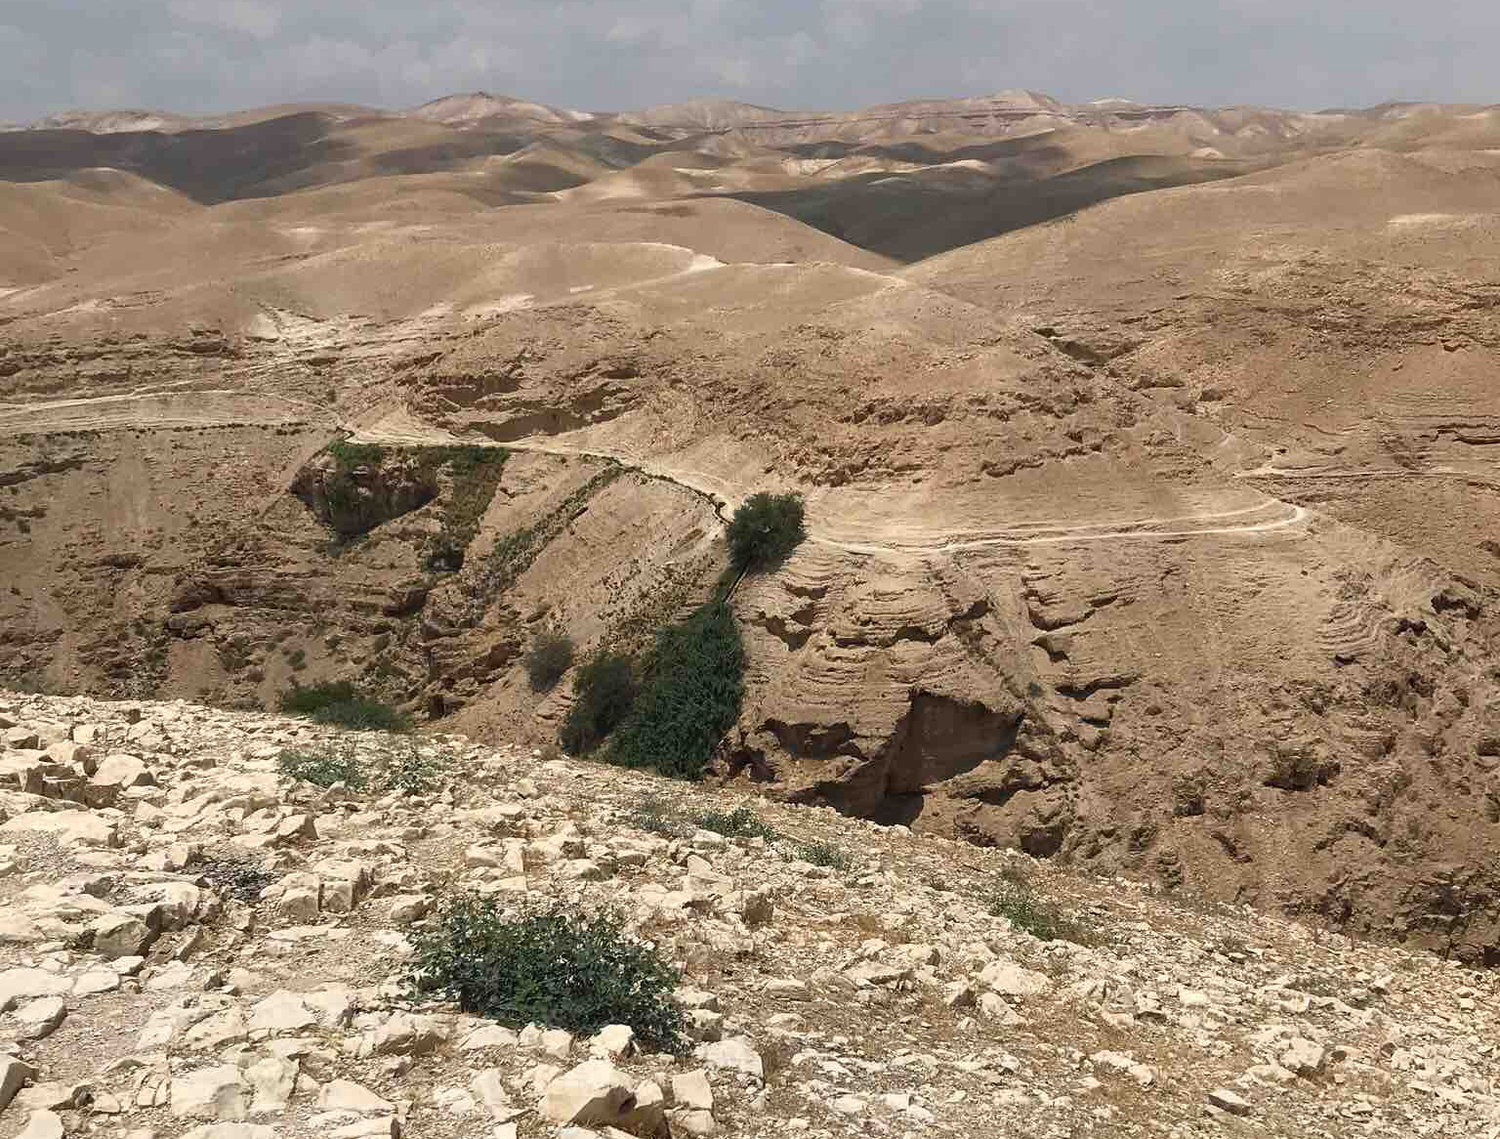 Wadi Qelt brings the parable of the Good Samaritan to life.